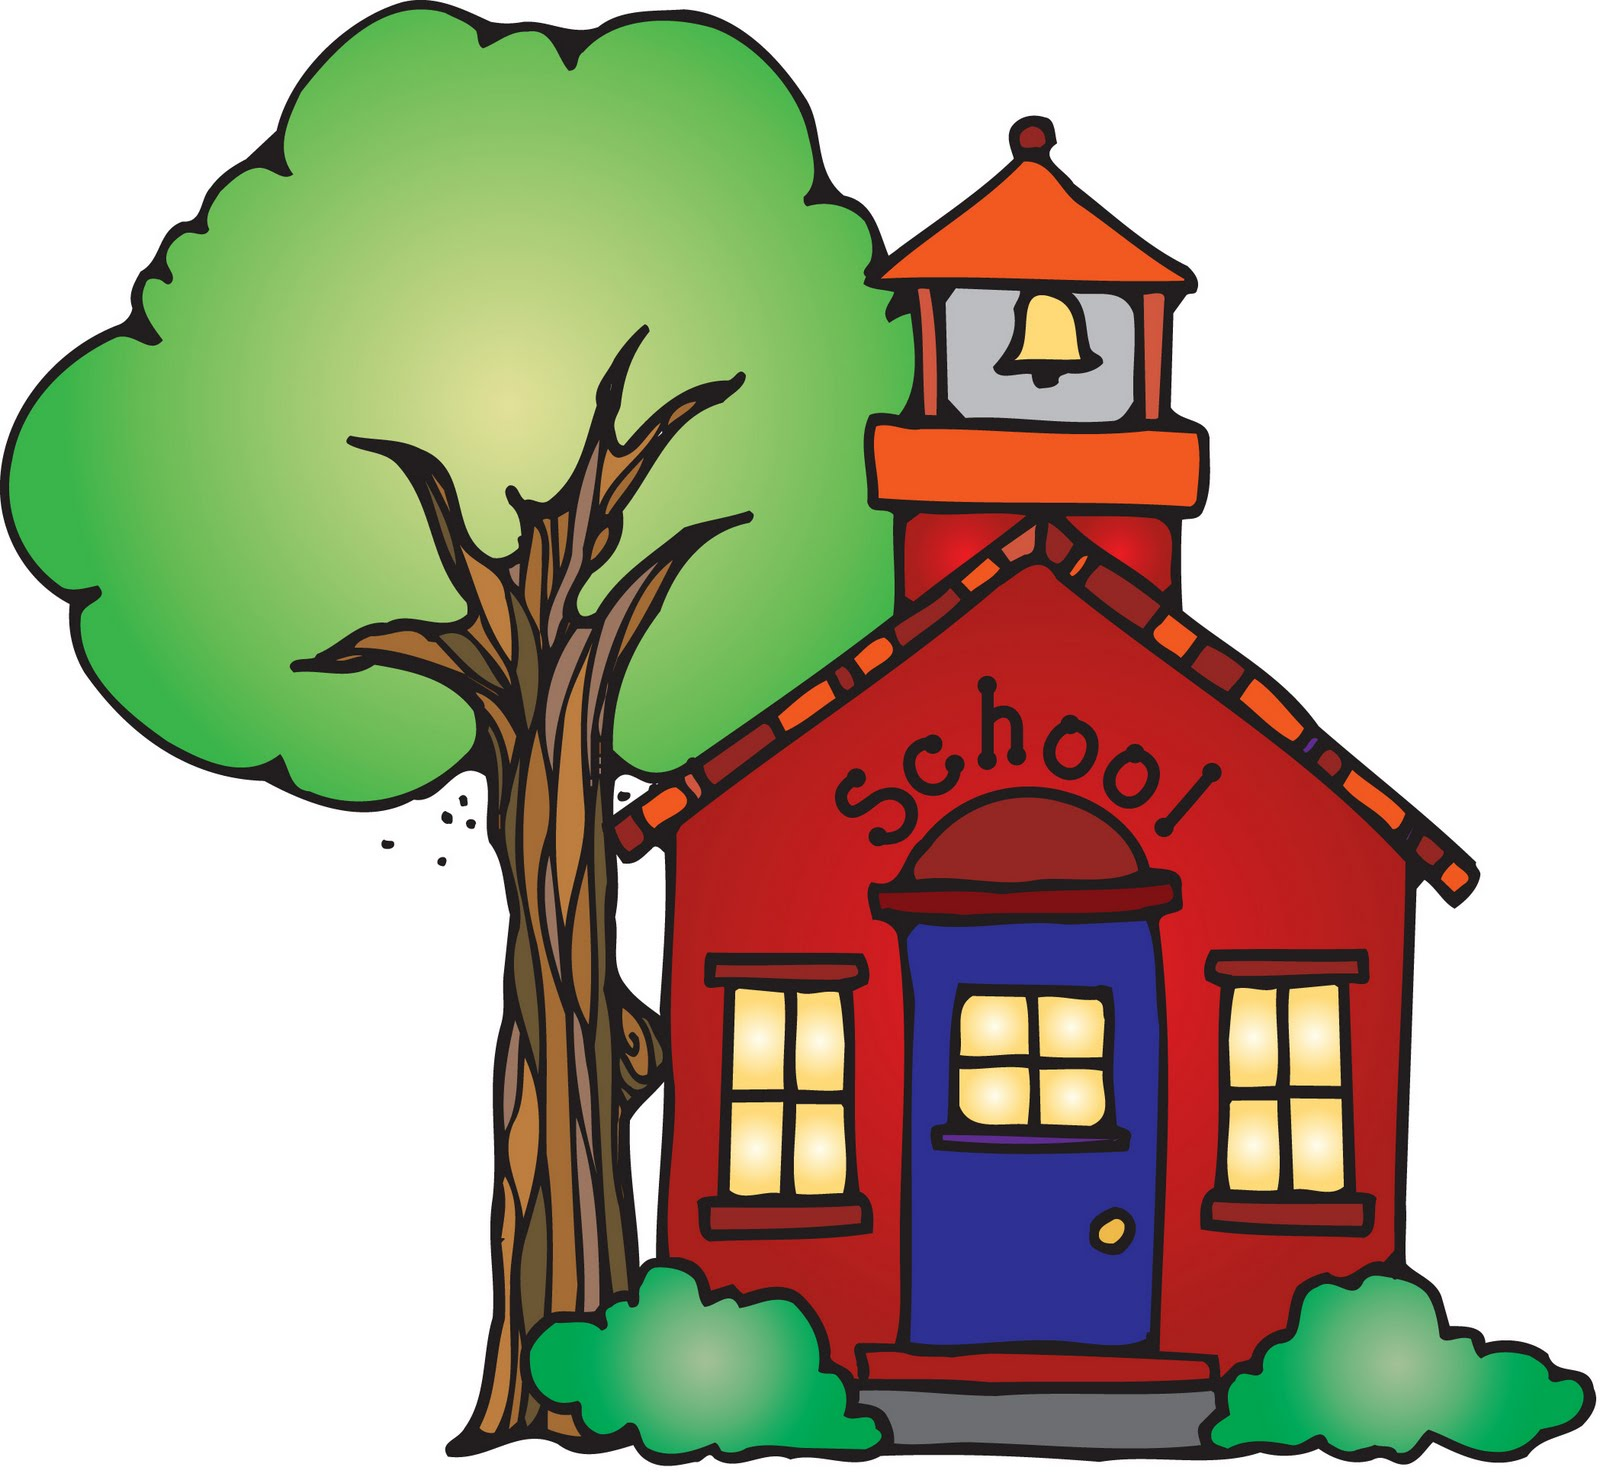 school house clipart at getdrawings com free for personal use rh getdrawings com open house clipart black and white open house clipart free